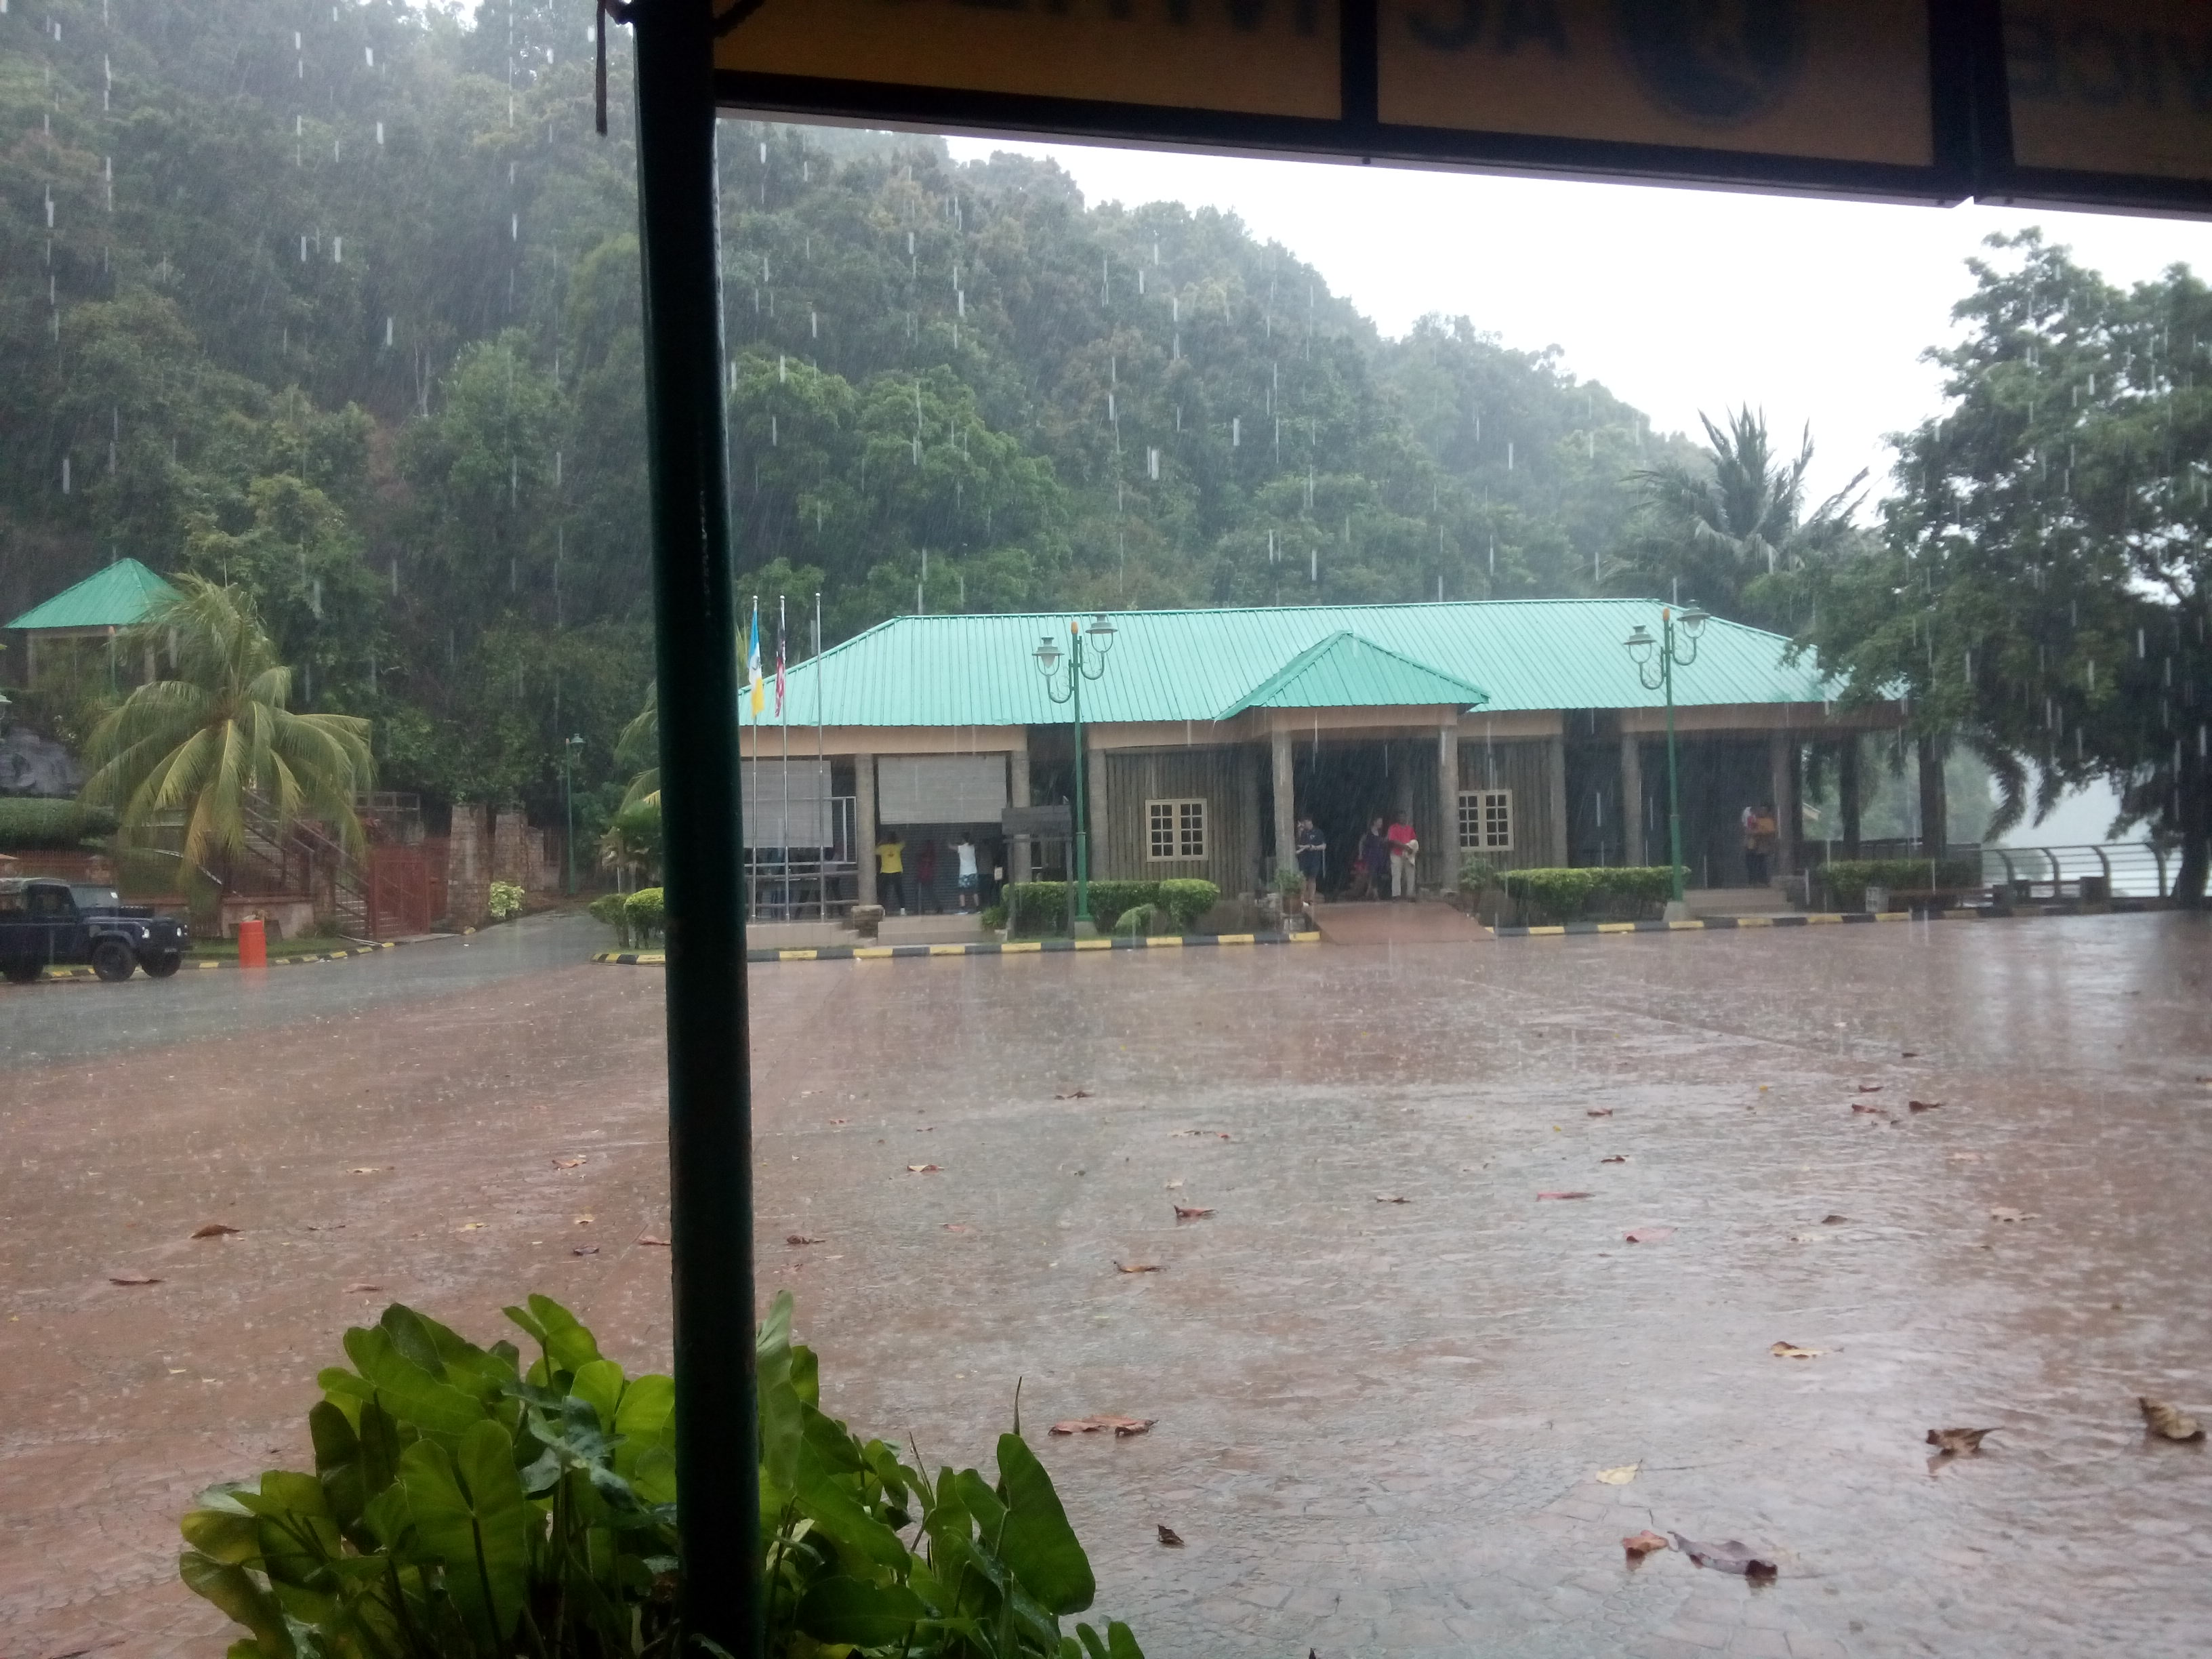 Heavy rain with buildings and trees